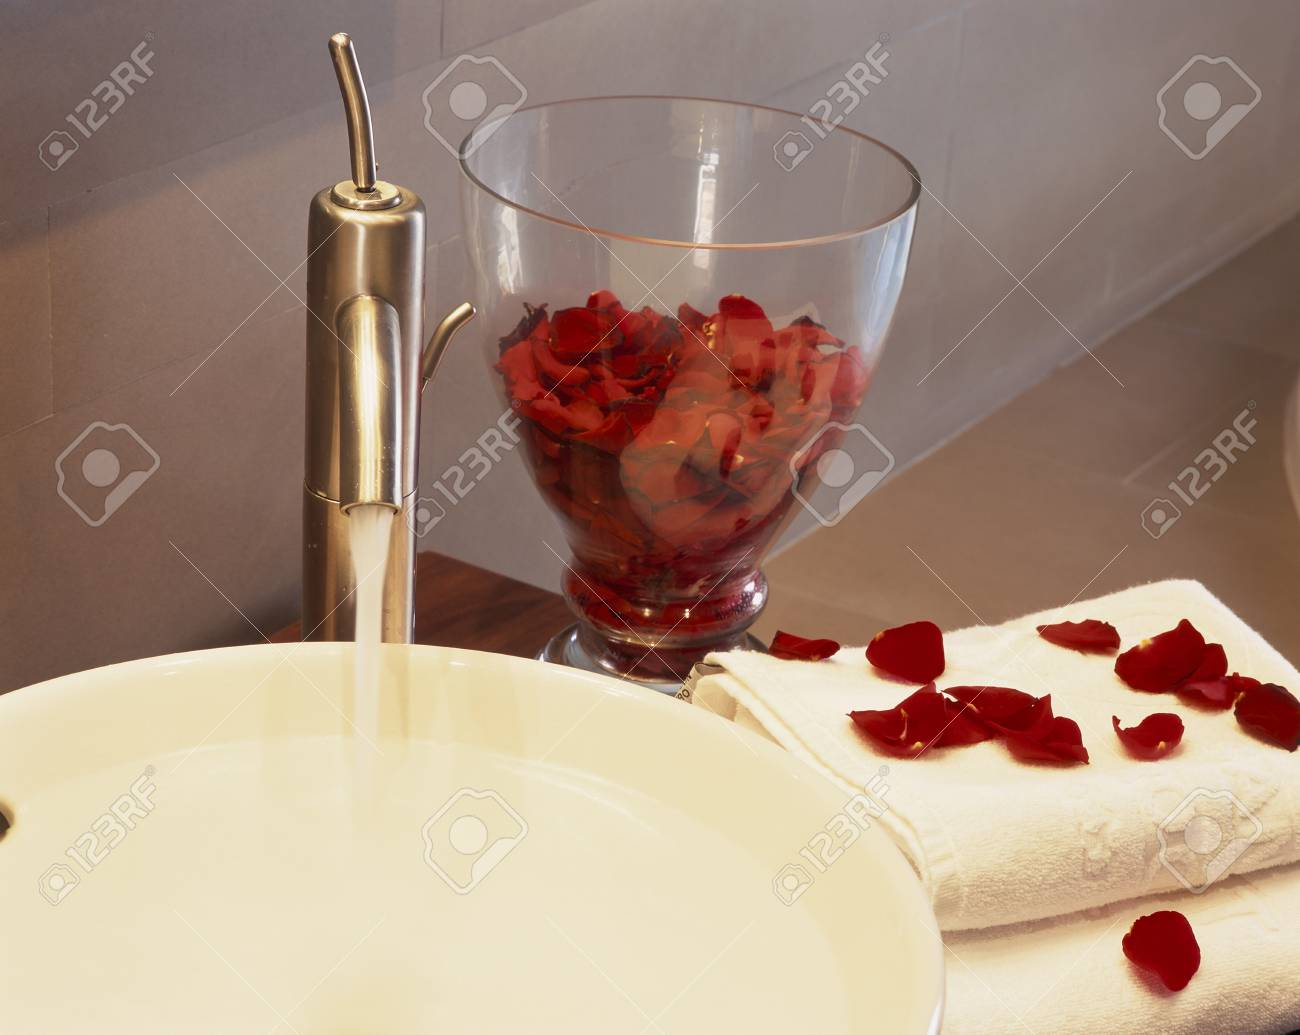 View of rose petals on a towel Stock Photo - 7215041